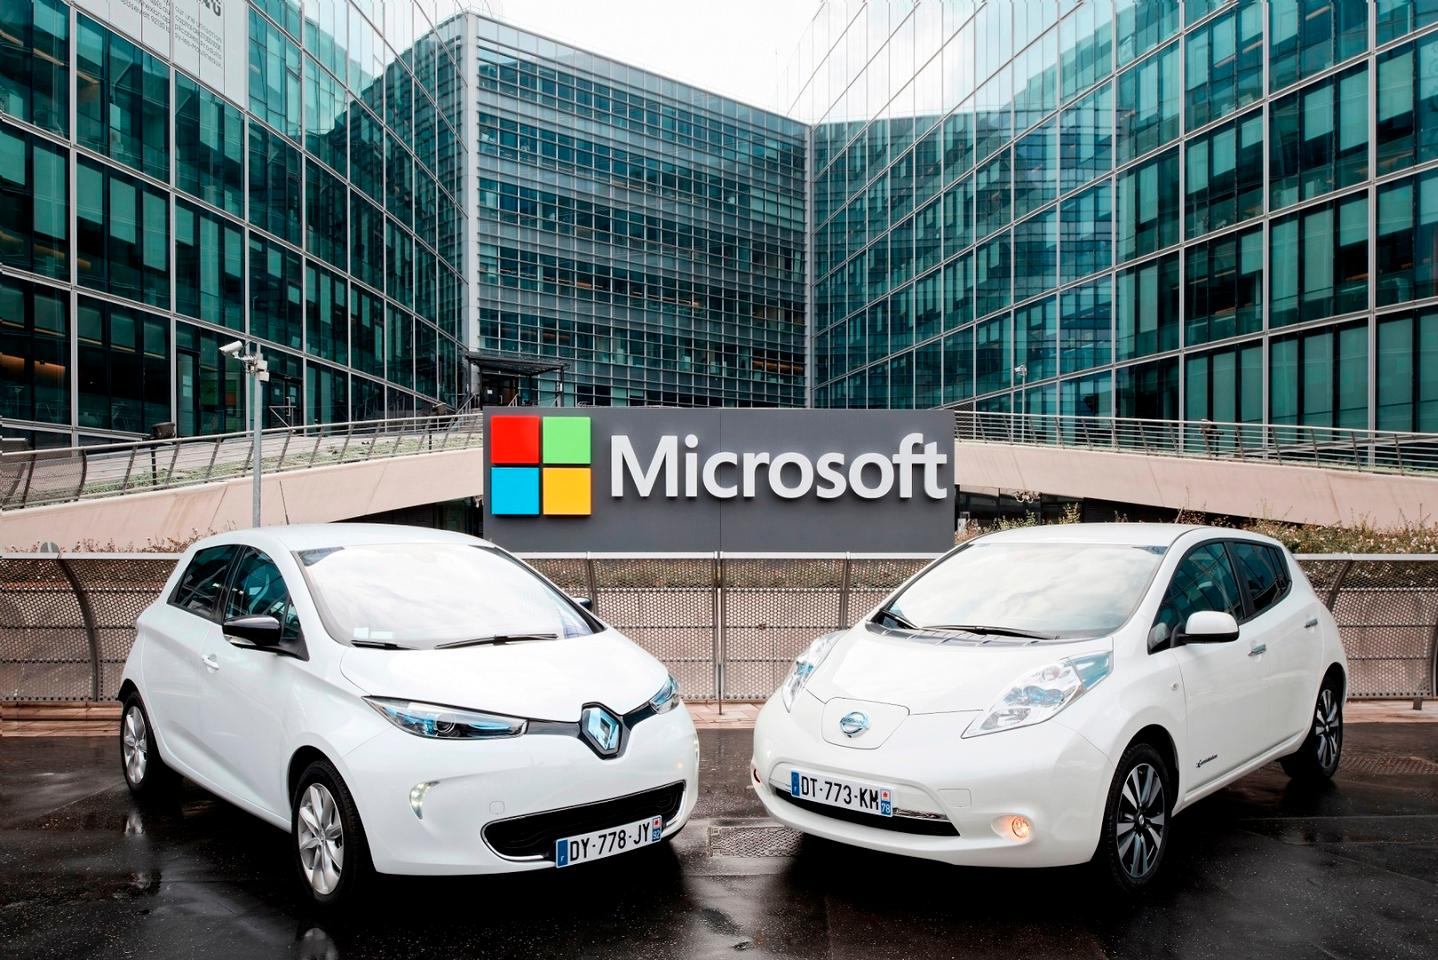 The Renault-Nissan Alliance is to make use of Microsoft's Azure platform for the development of automotive connectivity tools